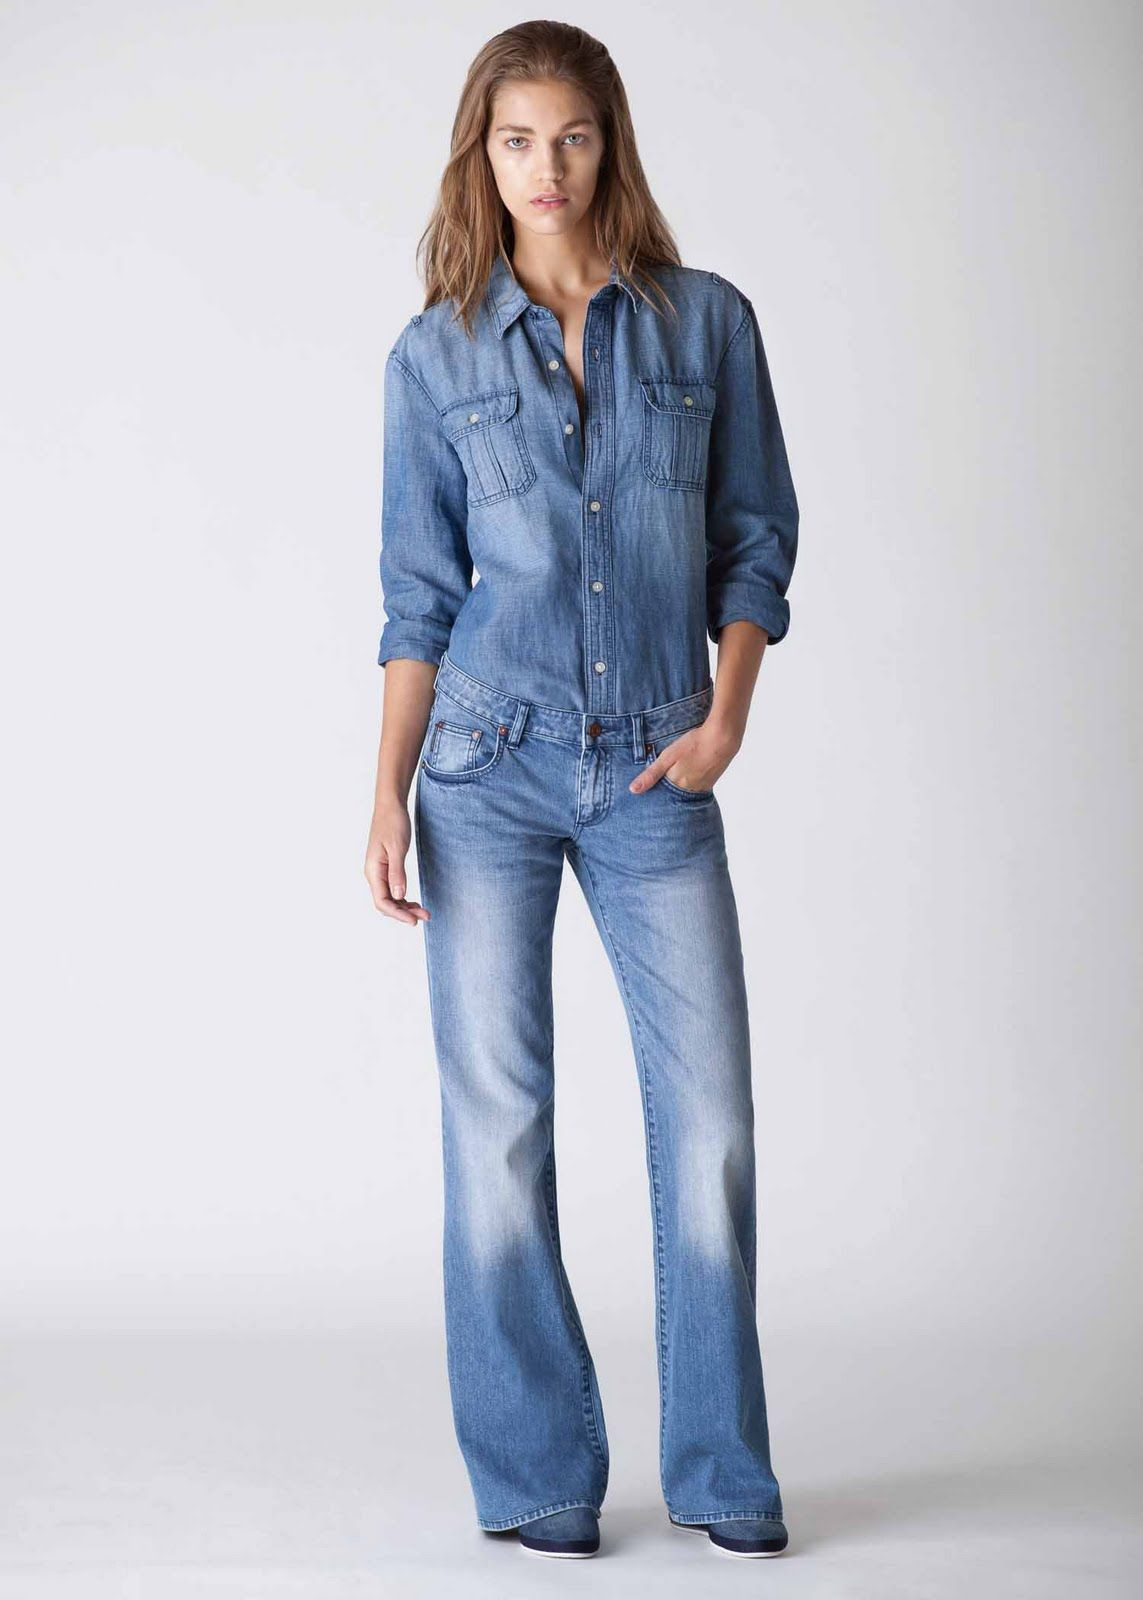 Images of Women Jean - Get Your Fashion Style